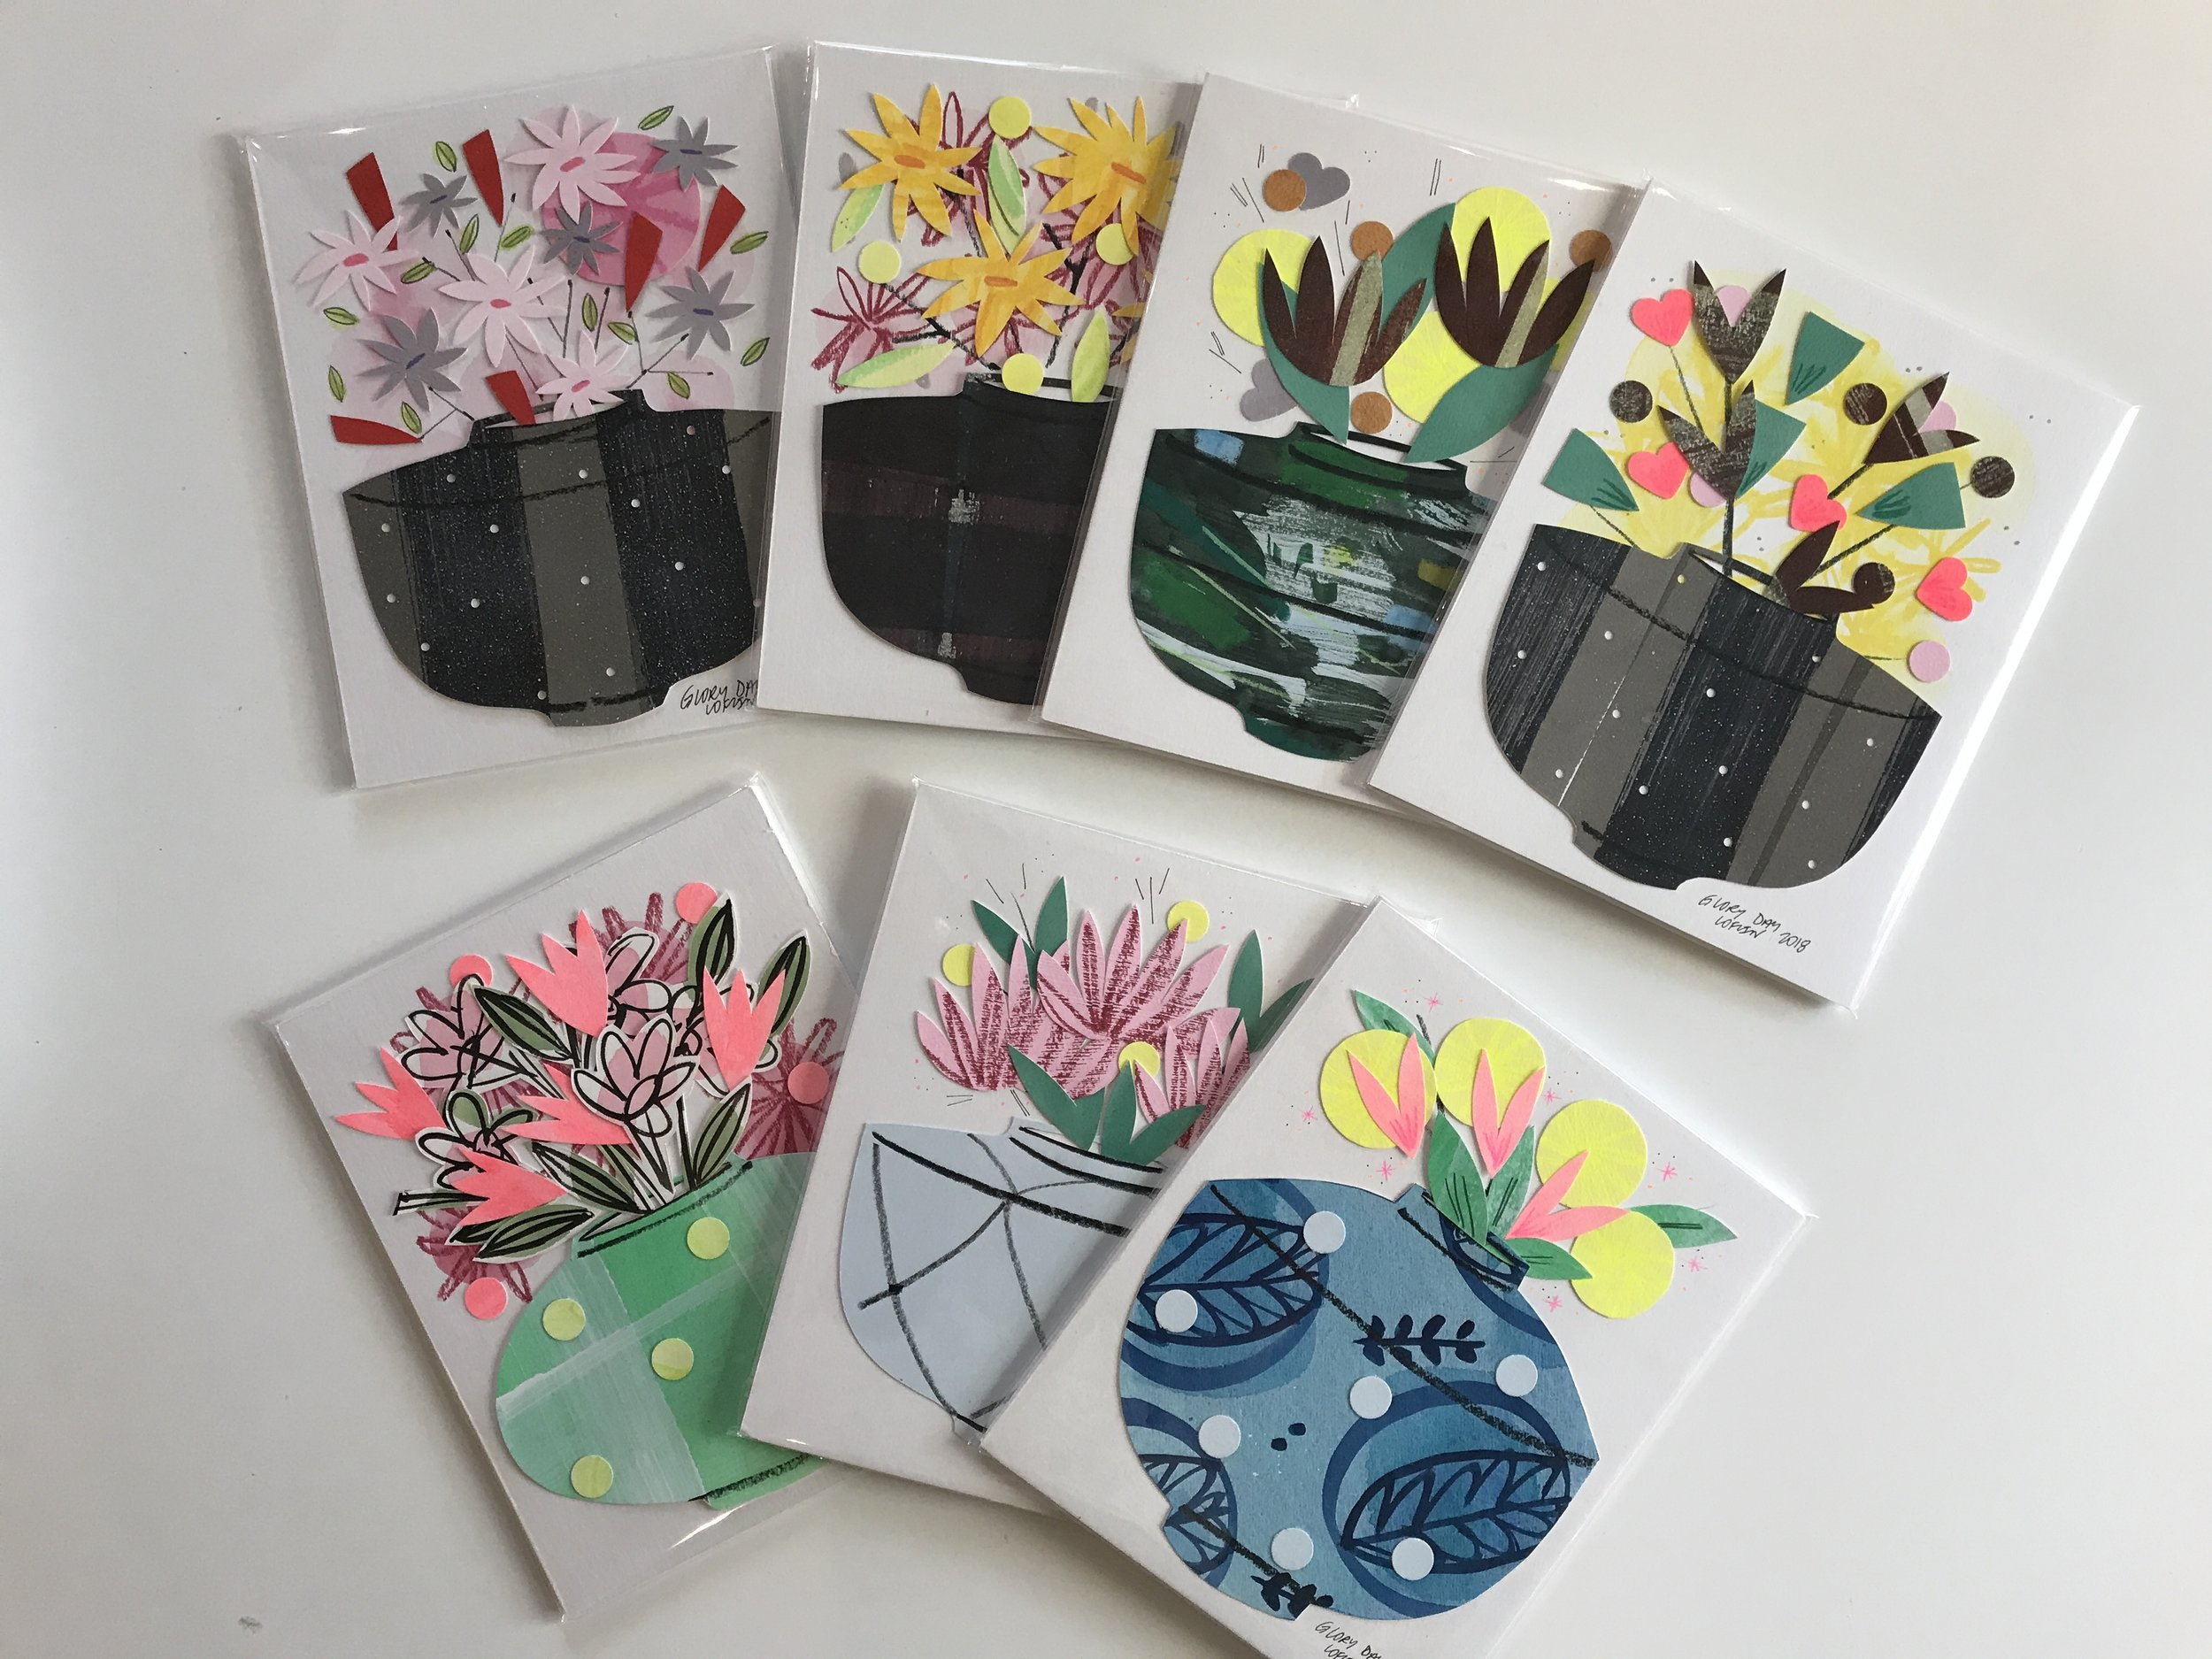 Floral Collages_8x10_85.JPG